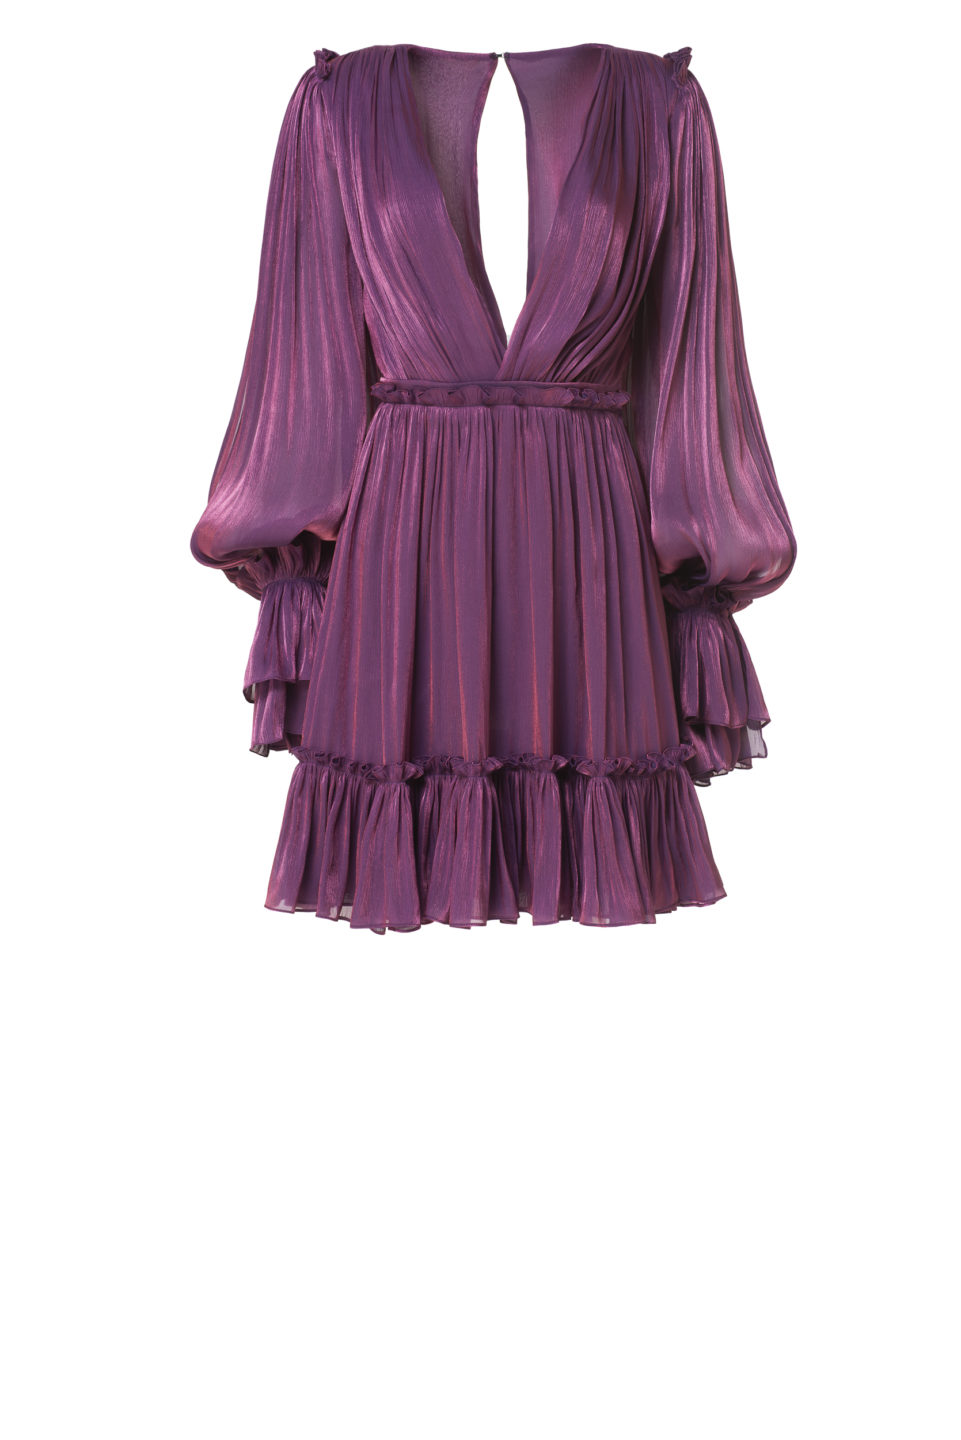 Lavina PS2151 Purple Iridescent Lurex Georgette Ruffle Mini Dresswith Flounce Hem & Poet Sleeves